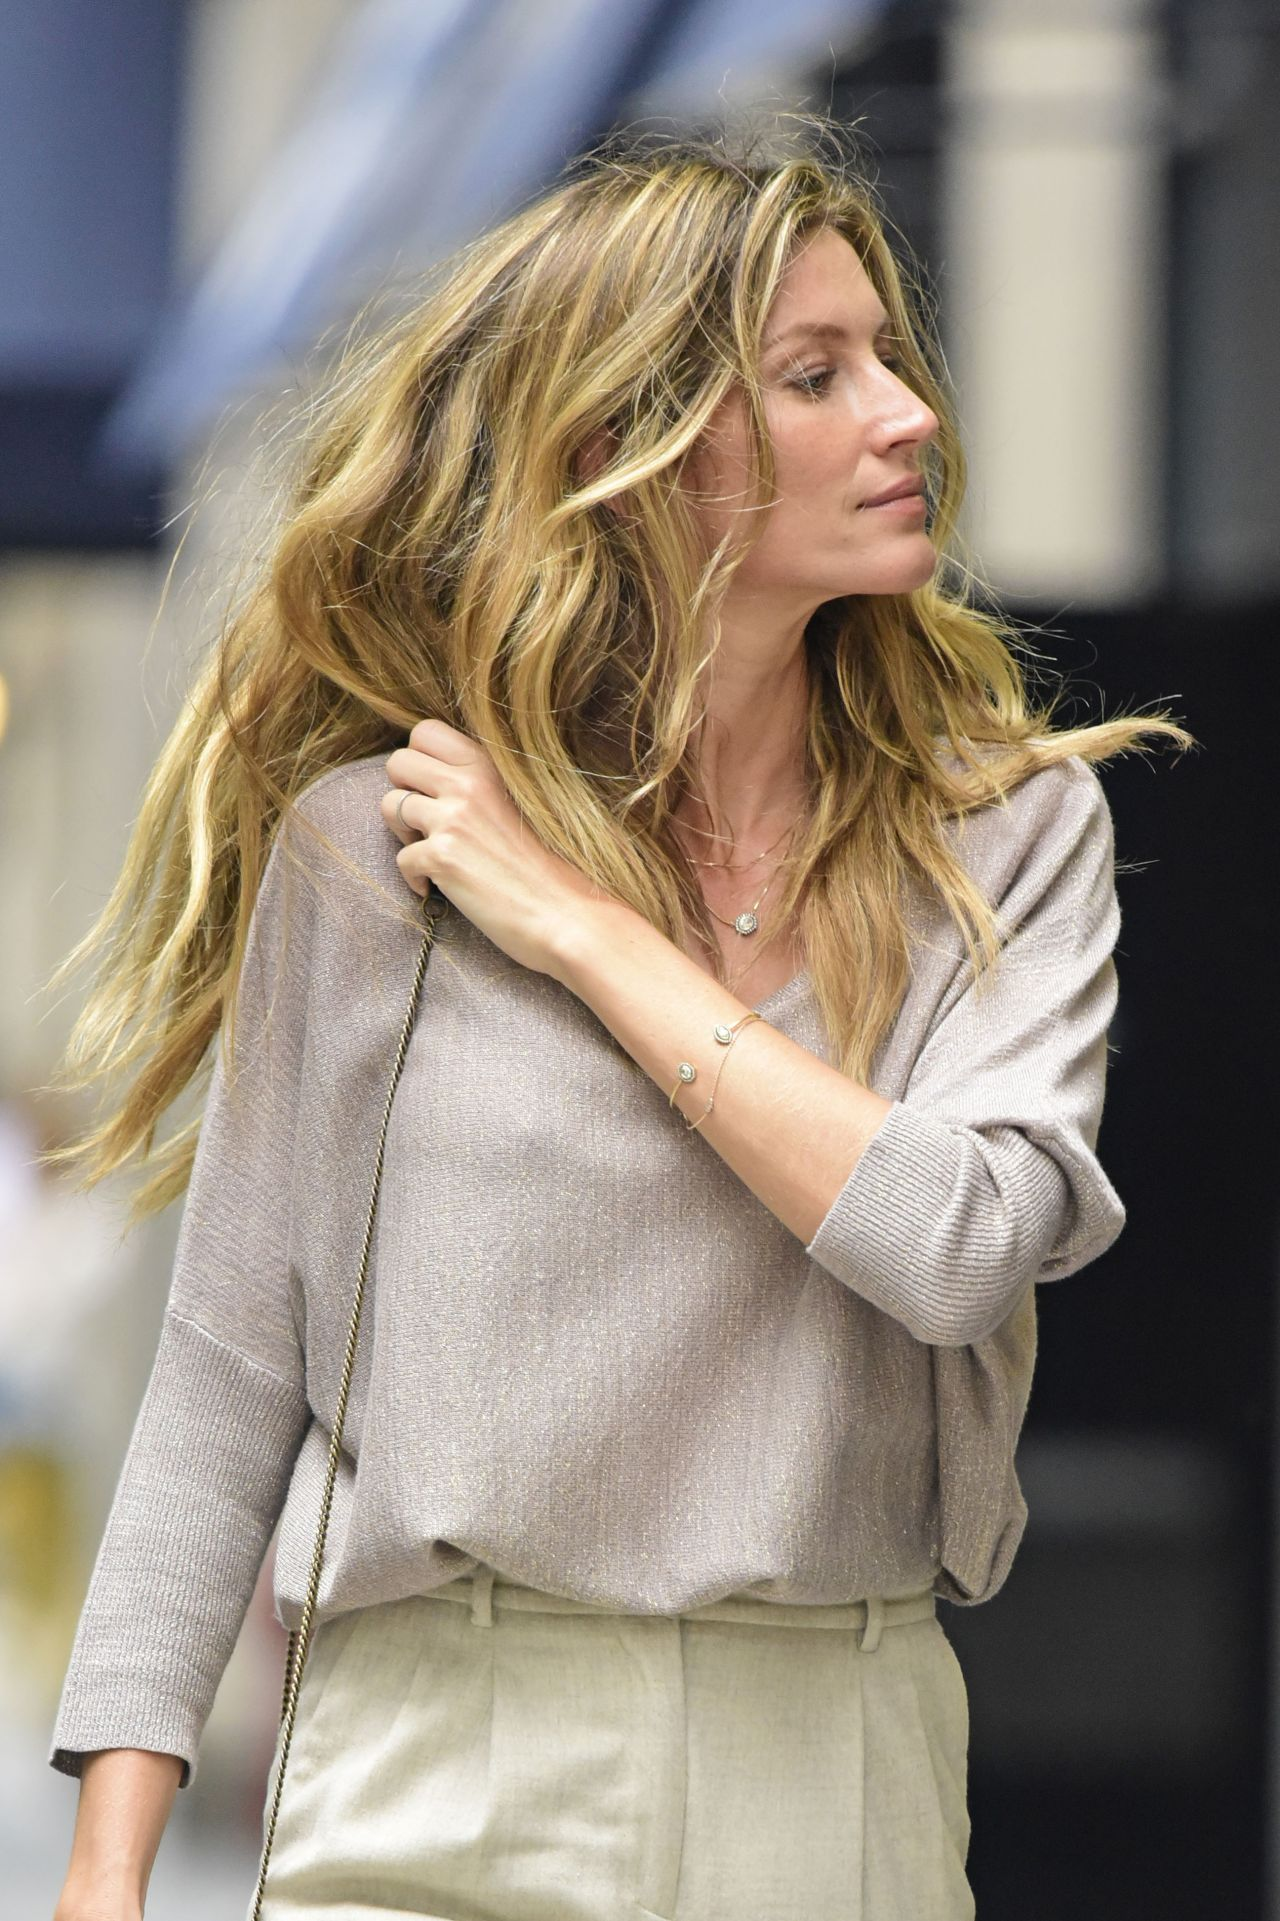 Gisele Bundchen Casual Style - Out in NYC, October 2015 Gisele Bundchen